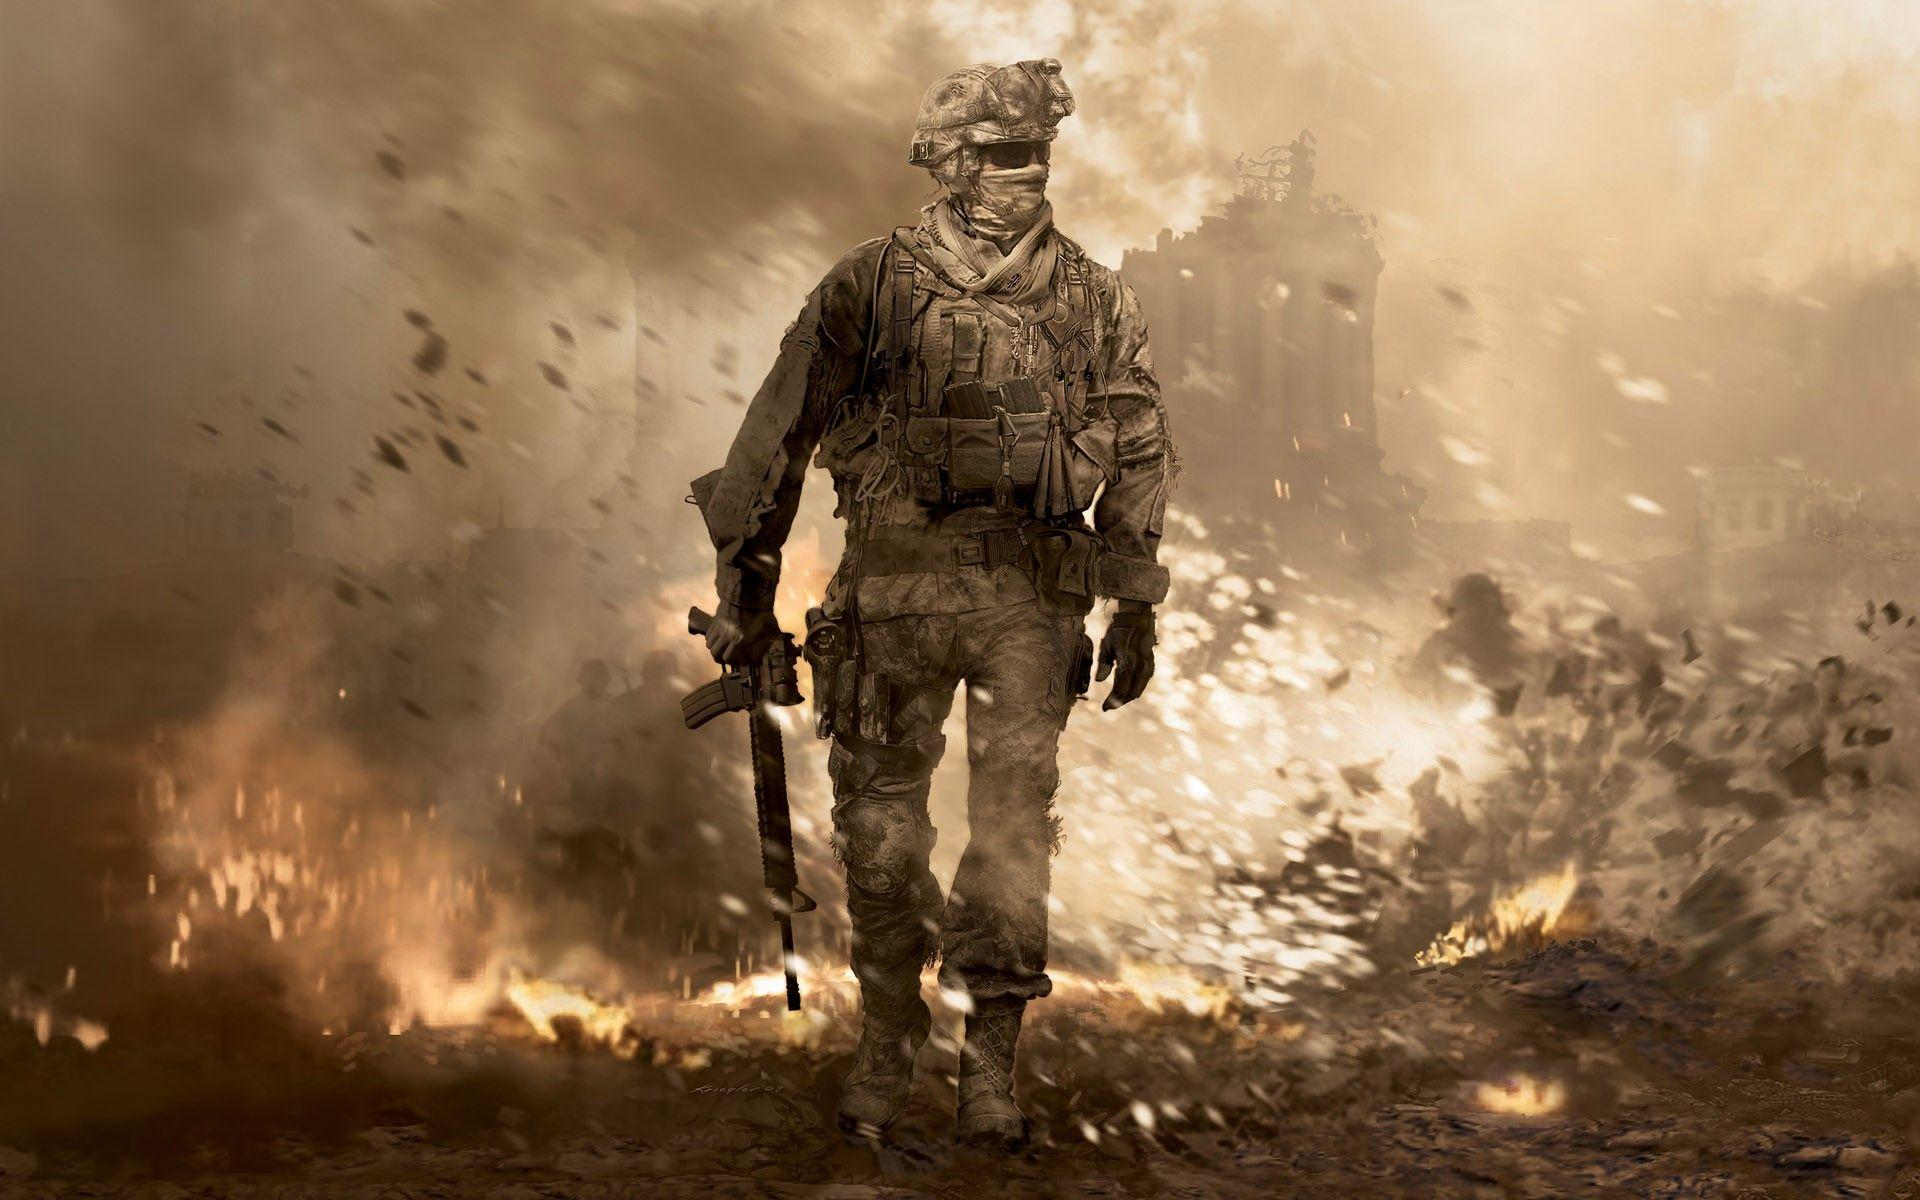 call of duty ghosts wallpapers download » Game Wallpapers Collections